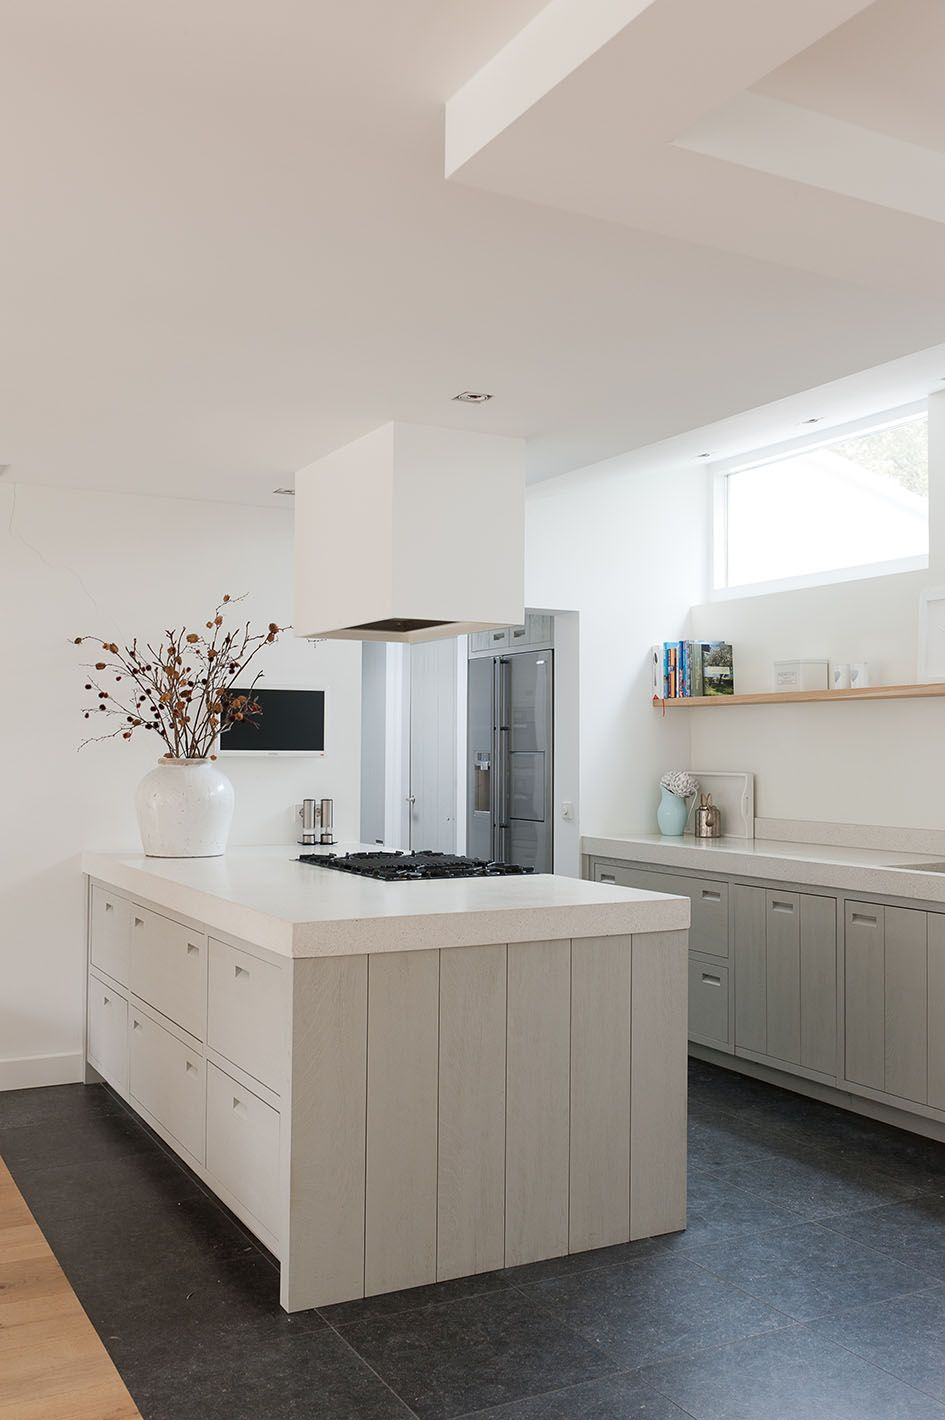 Keuken Muebles De Cocina - Www Vandenkommer Nl Neutral Taupe And White Kitchen Keuken [mjhdah]https://i.pinimg.com/originals/af/af/ef/afafef03e7437d4fc1be6cdf16047a3e.jpg